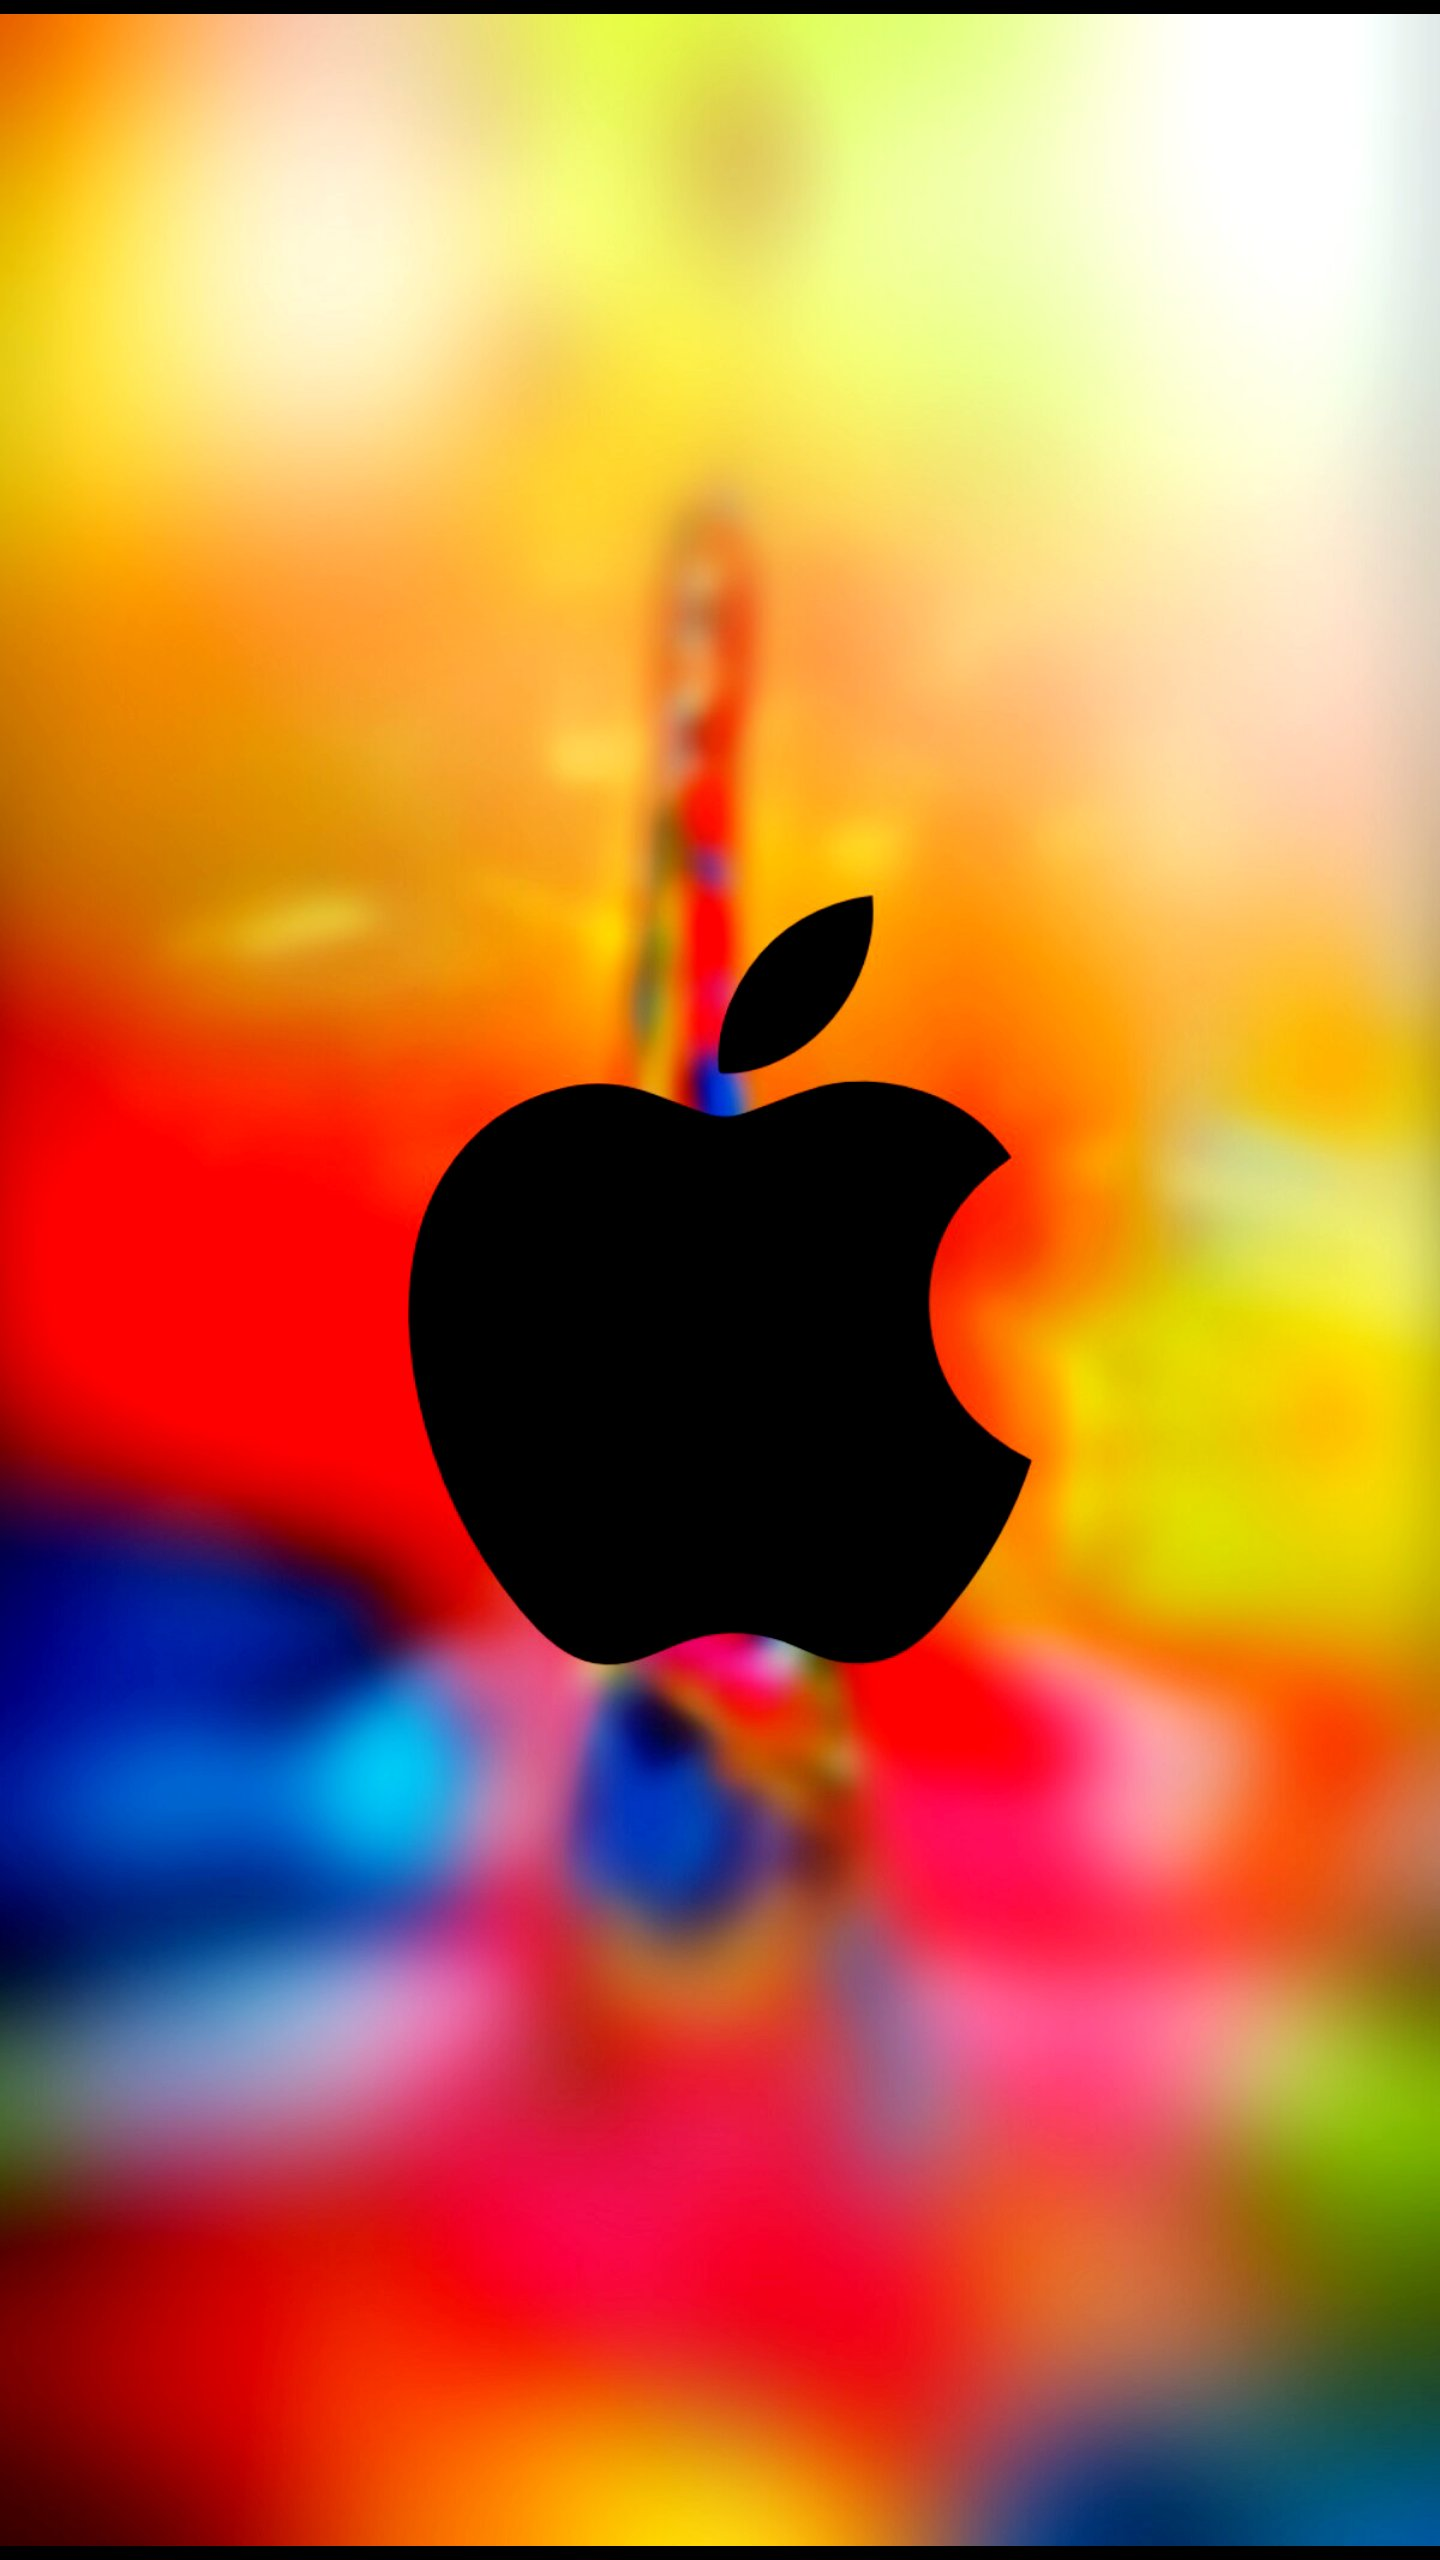 Wwdc 2018 Apple S 5 Biggest Letdowns And Where Google Wins Inverse